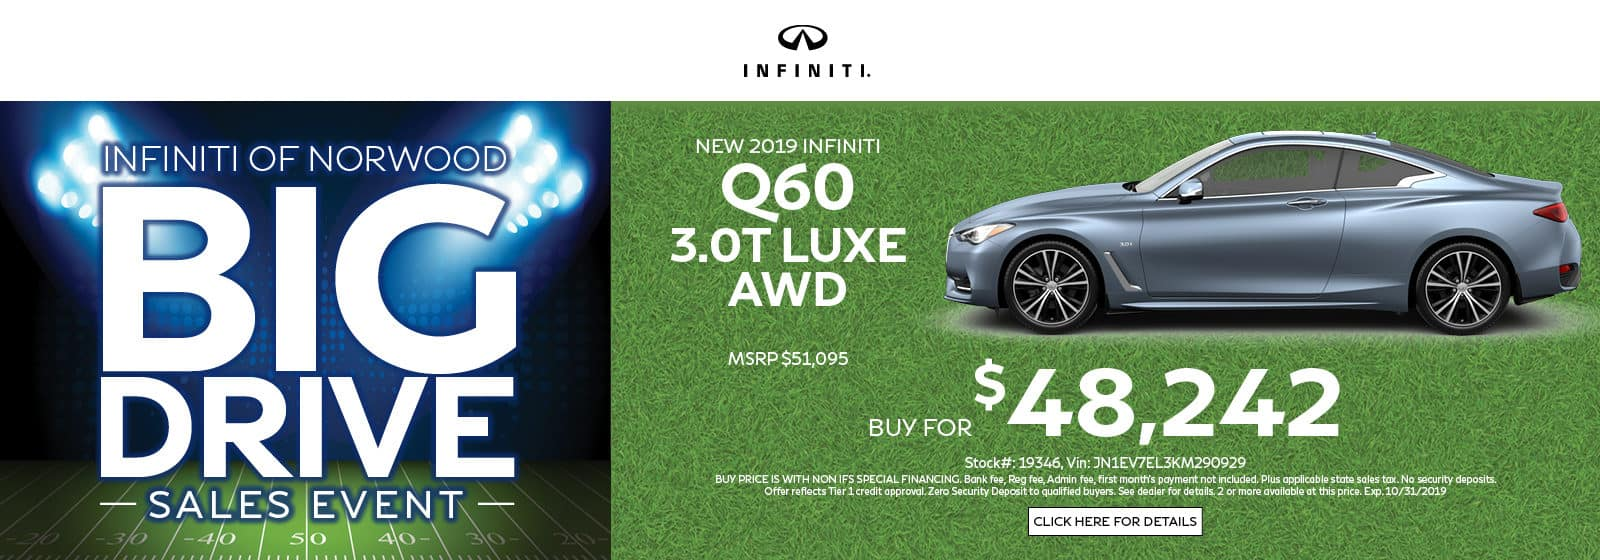 Buy a Q60 3.0T Luxe AWD for $48,242